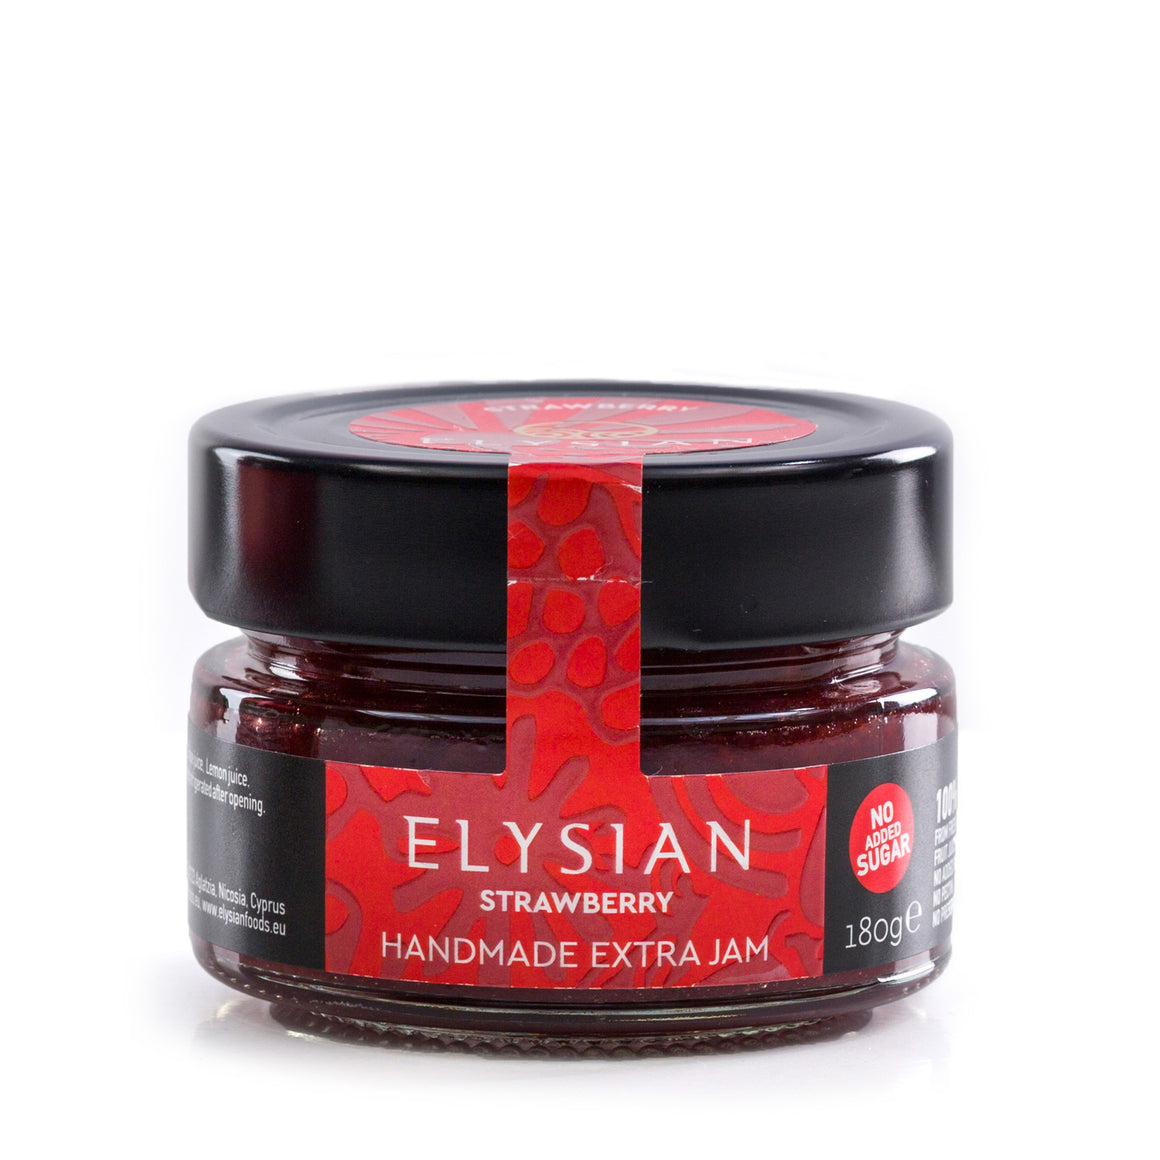 'Elysian' Strawberry Extra Jam -180g